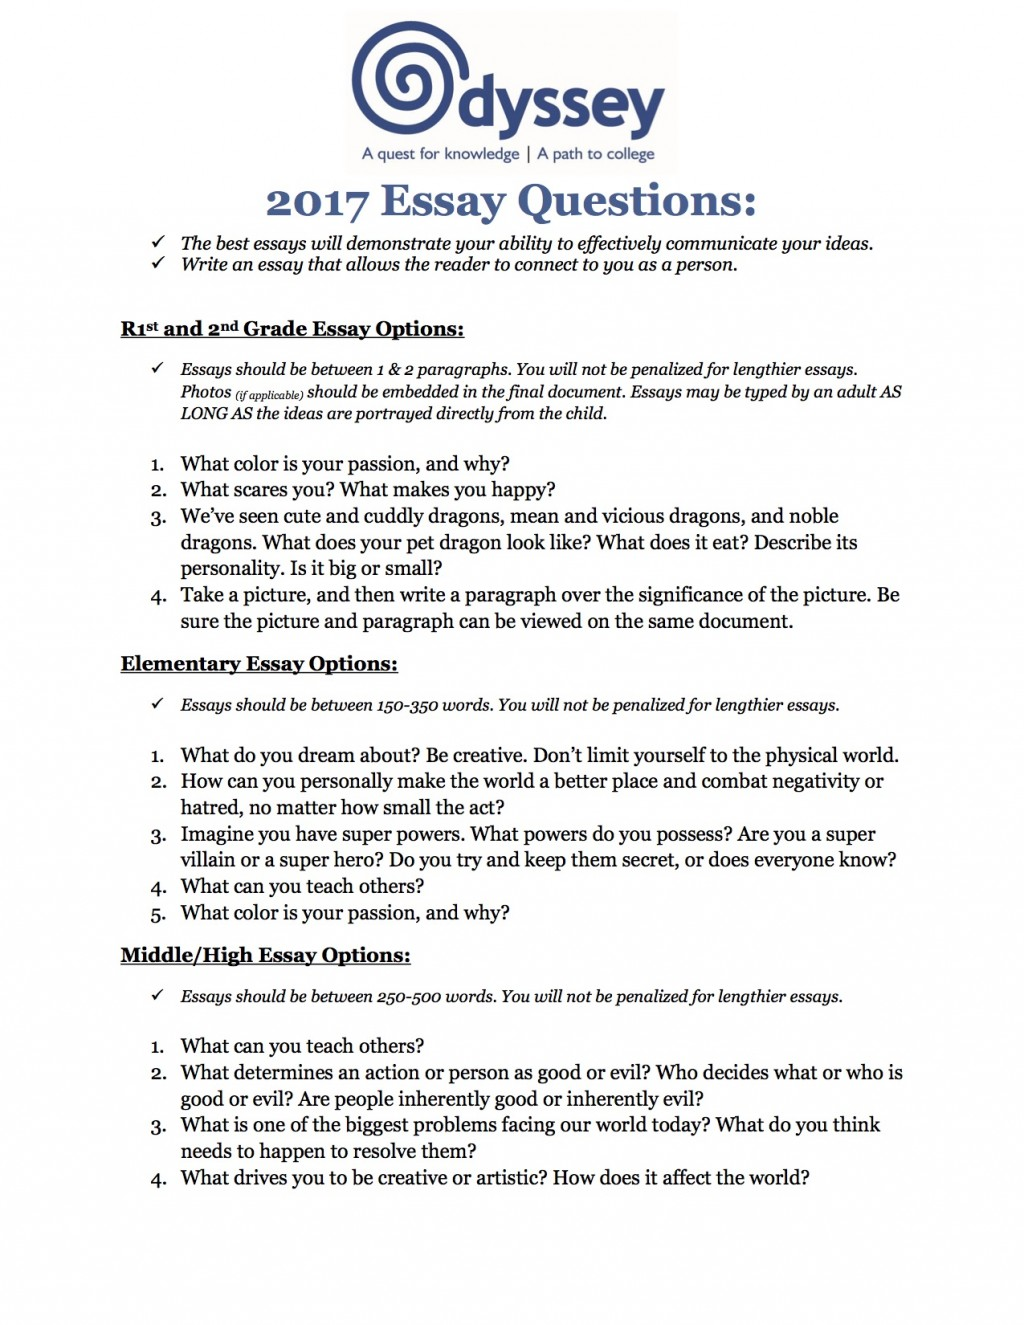 008 Student Essay Example The Odyssey Topics Greek Family How To Good Awesome Medical Competitions 2017 Database Template Large